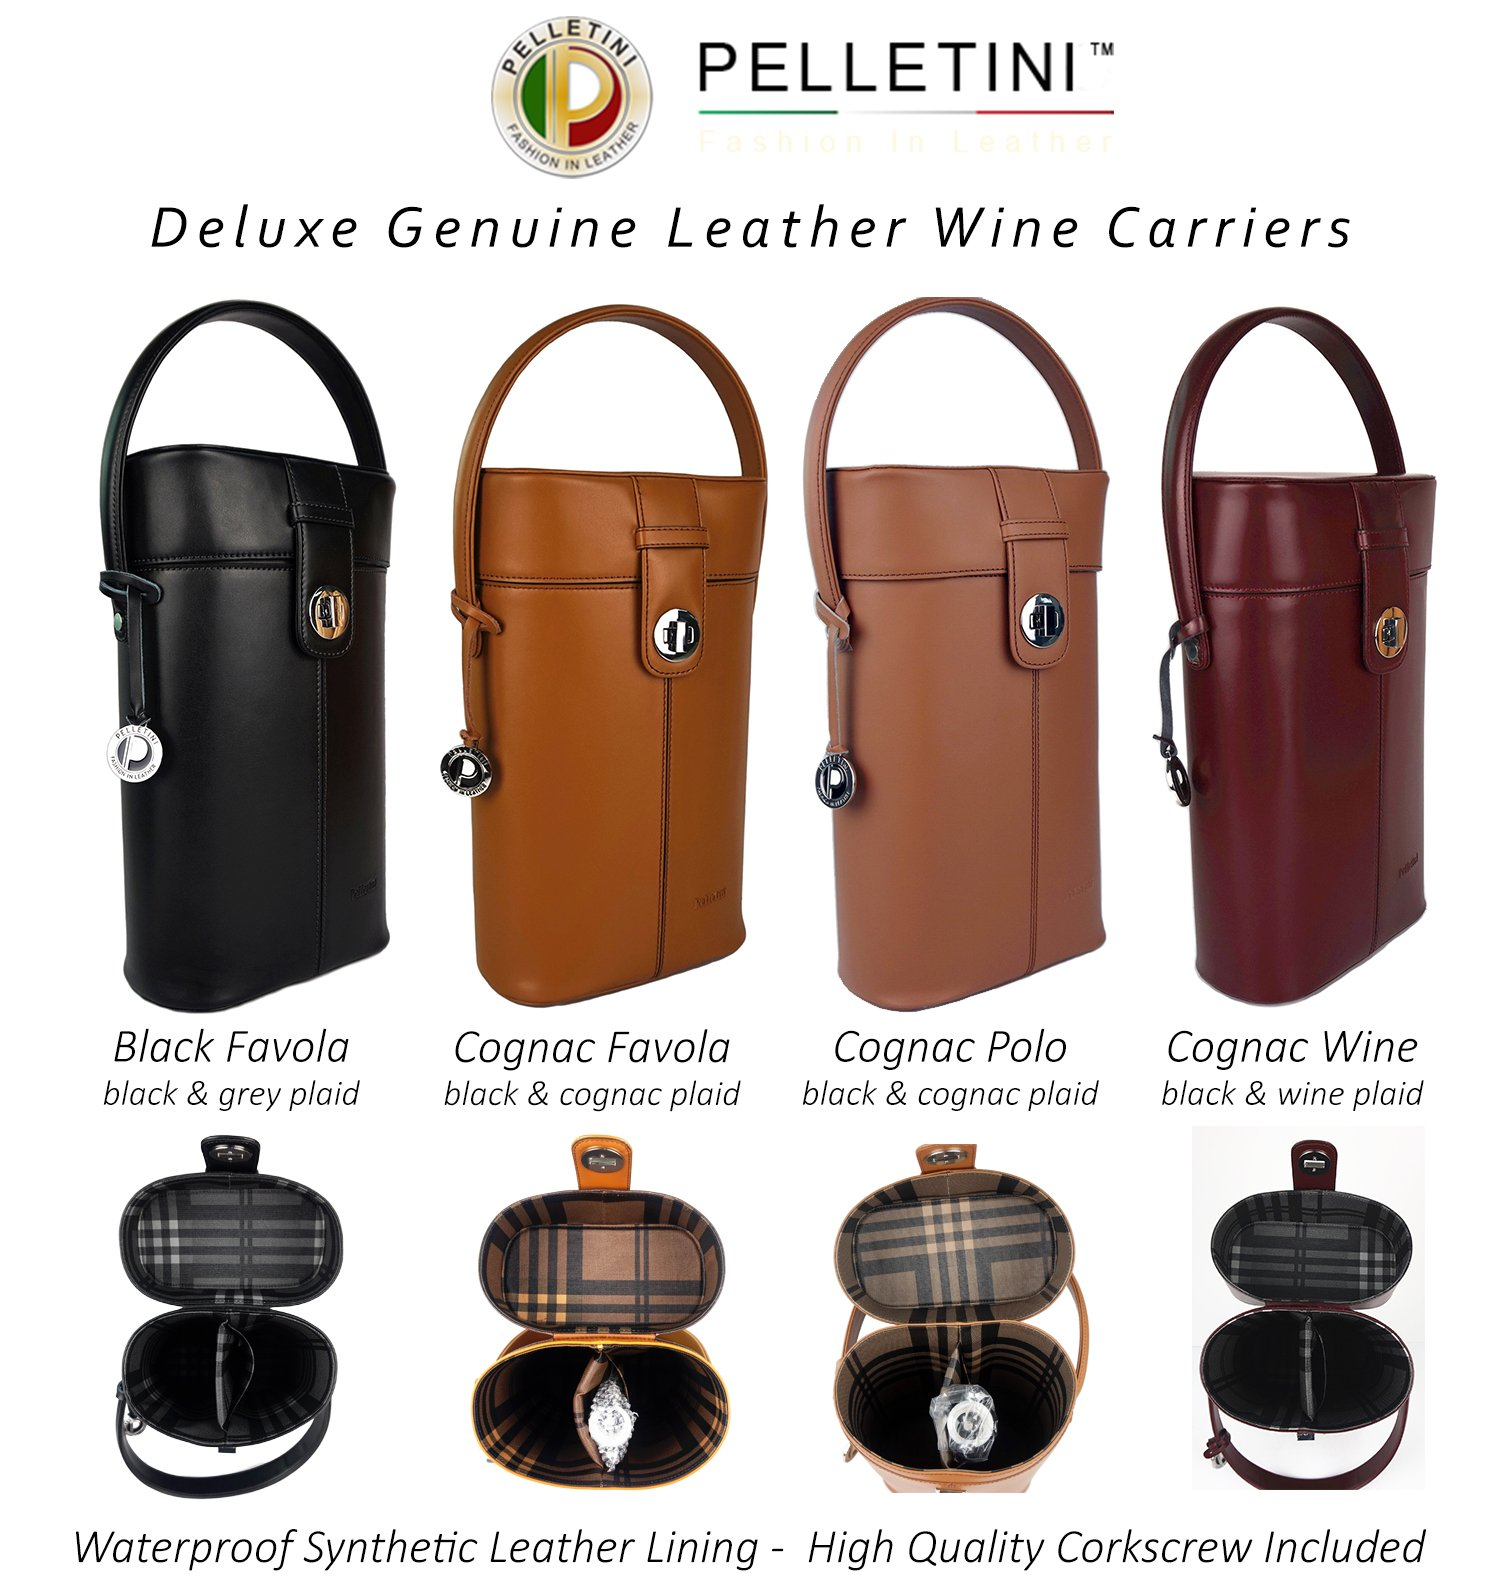 Deluxe Real Leather Wine Carrier Set - Includes Bottle Opener & Dust Bag - Double Wine Bottle Holder - Luxury Genuine Leather Wine Carrier - Wine Bag - Great Birthday Gift (Brown)